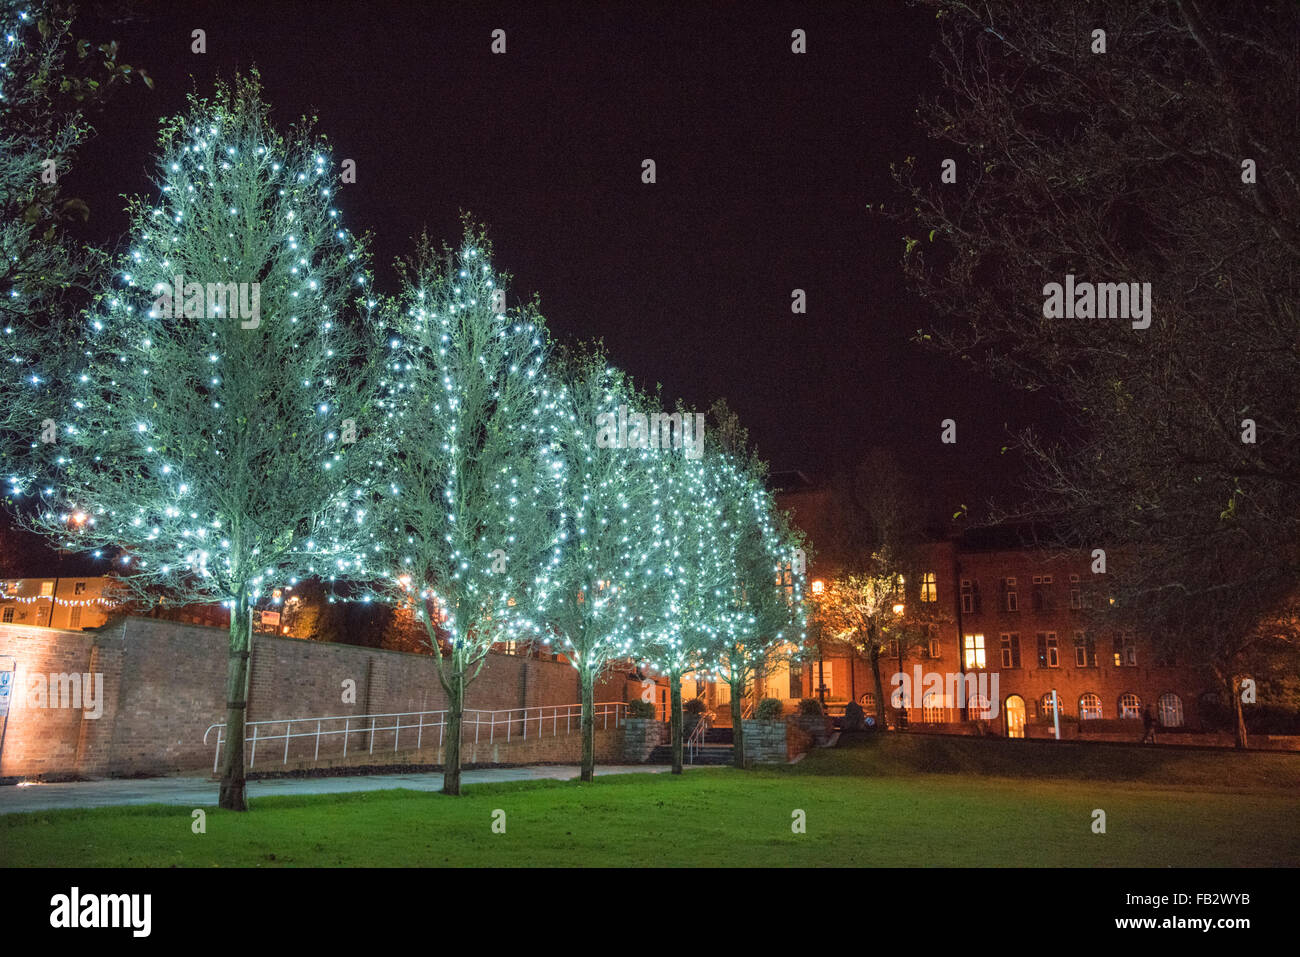 Dudley Council House lit up at night and a row of trees in Priory Park with Christmas lights decorating them - Stock Image